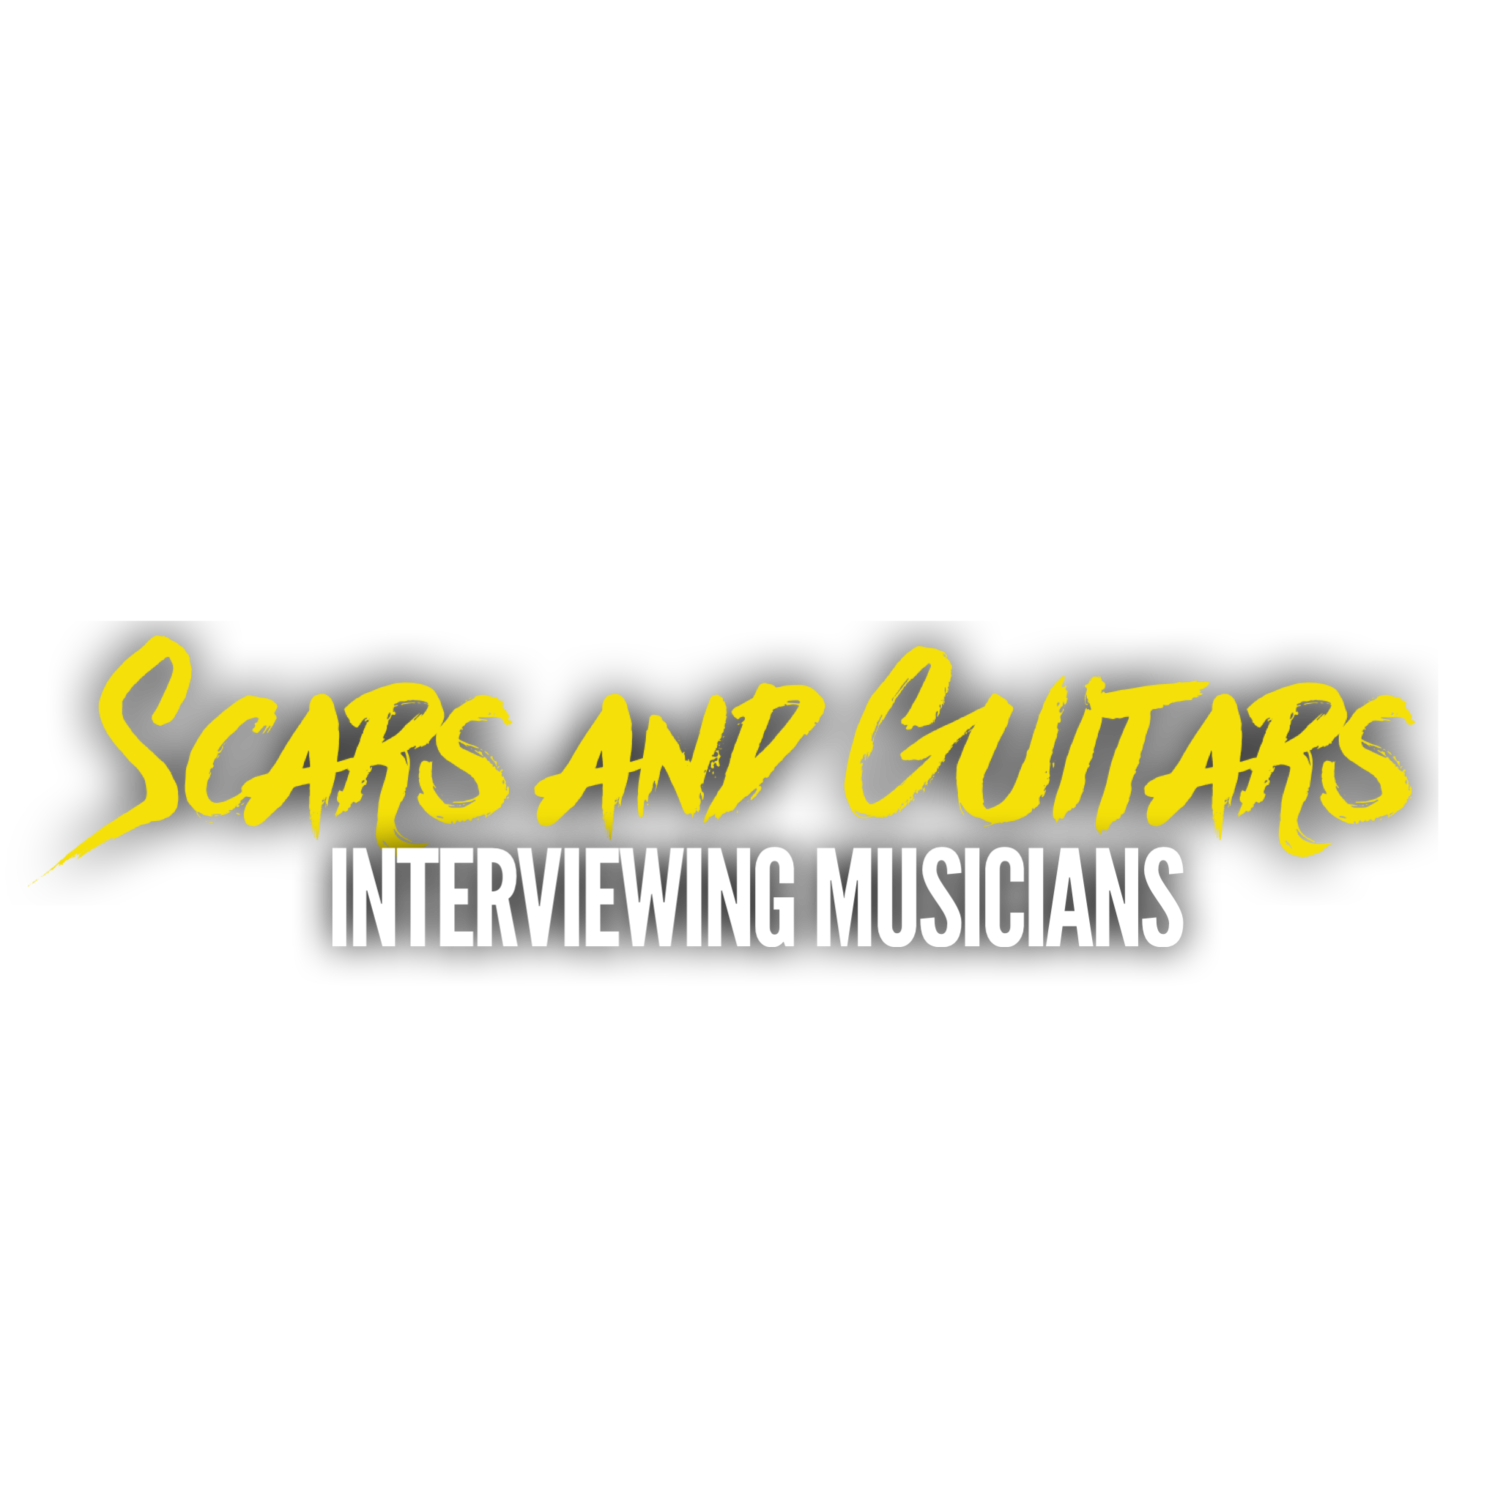 Scars and Guitars